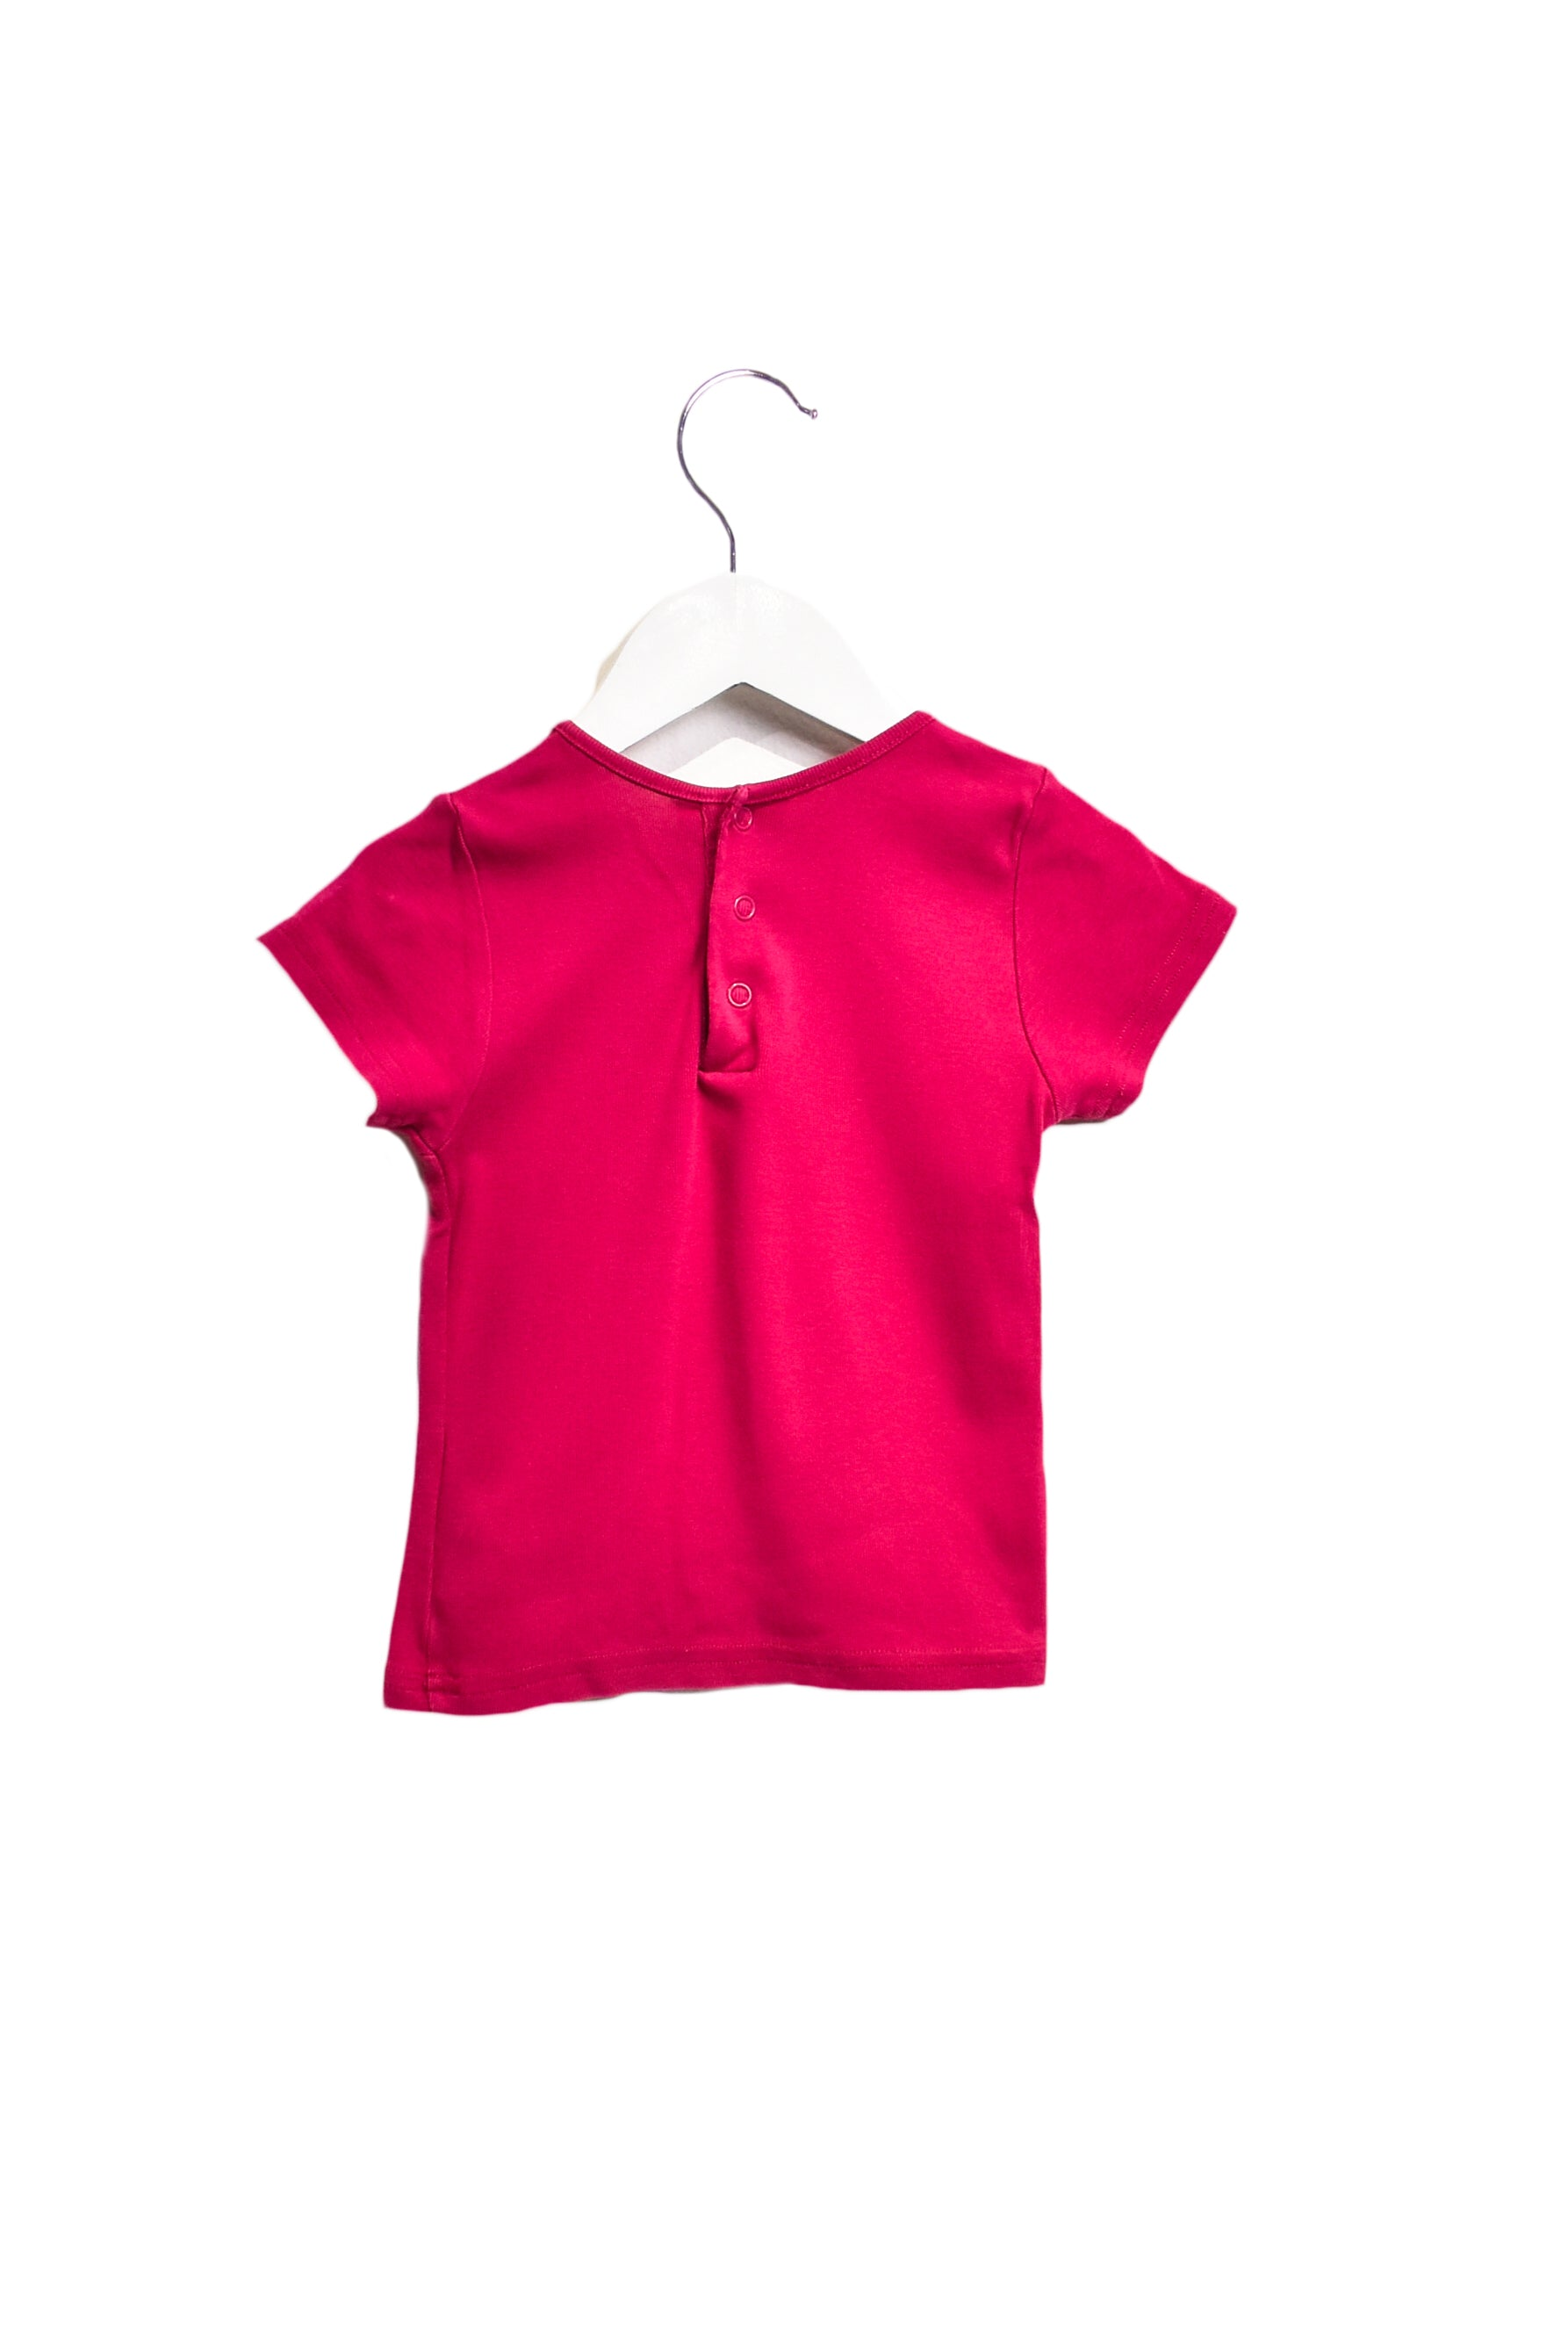 10016346 DKNY Kids~T-Shirt 2T at Retykle